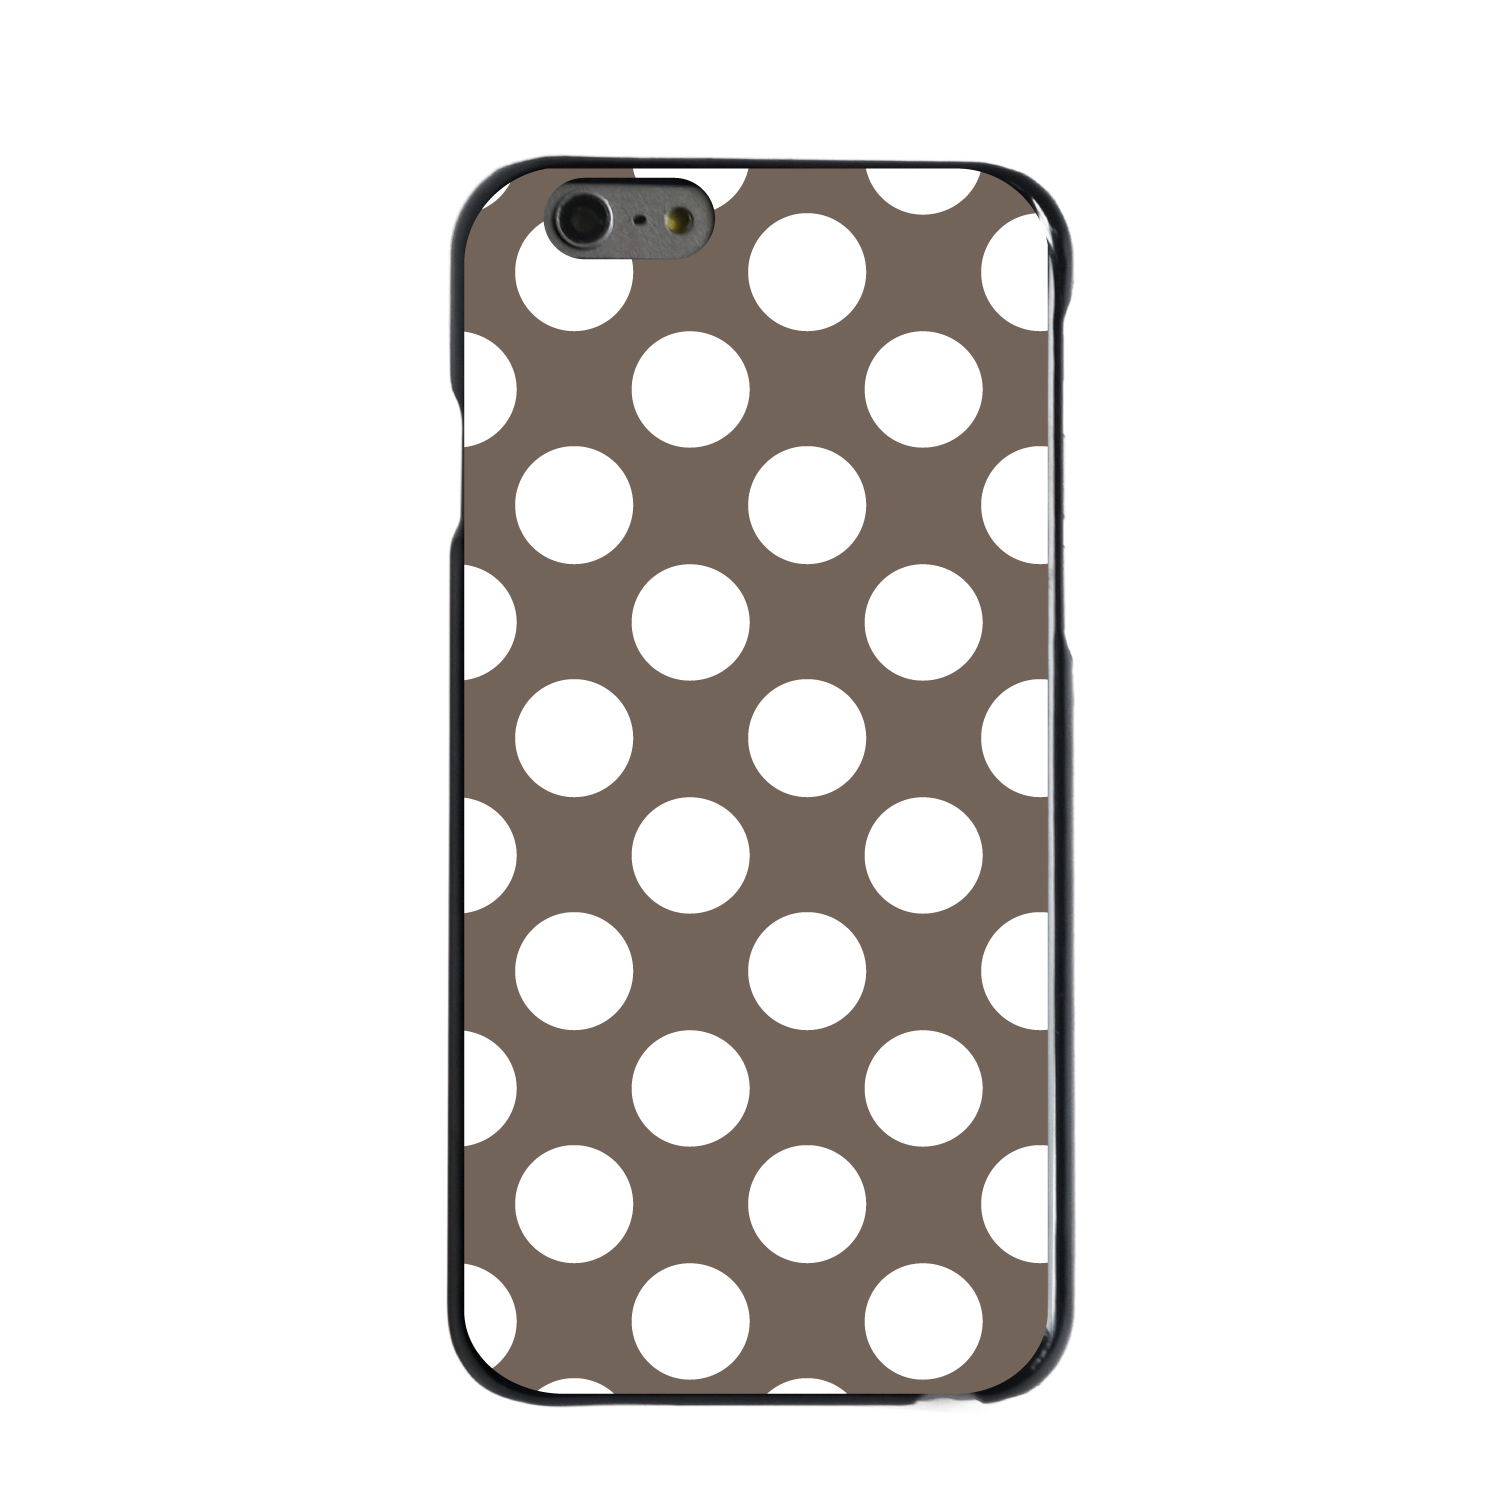 "CUSTOM Black Hard Plastic Snap-On Case for Apple iPhone 6 / 6S (4.7"" Screen) - White & Taupe Polka Dots"